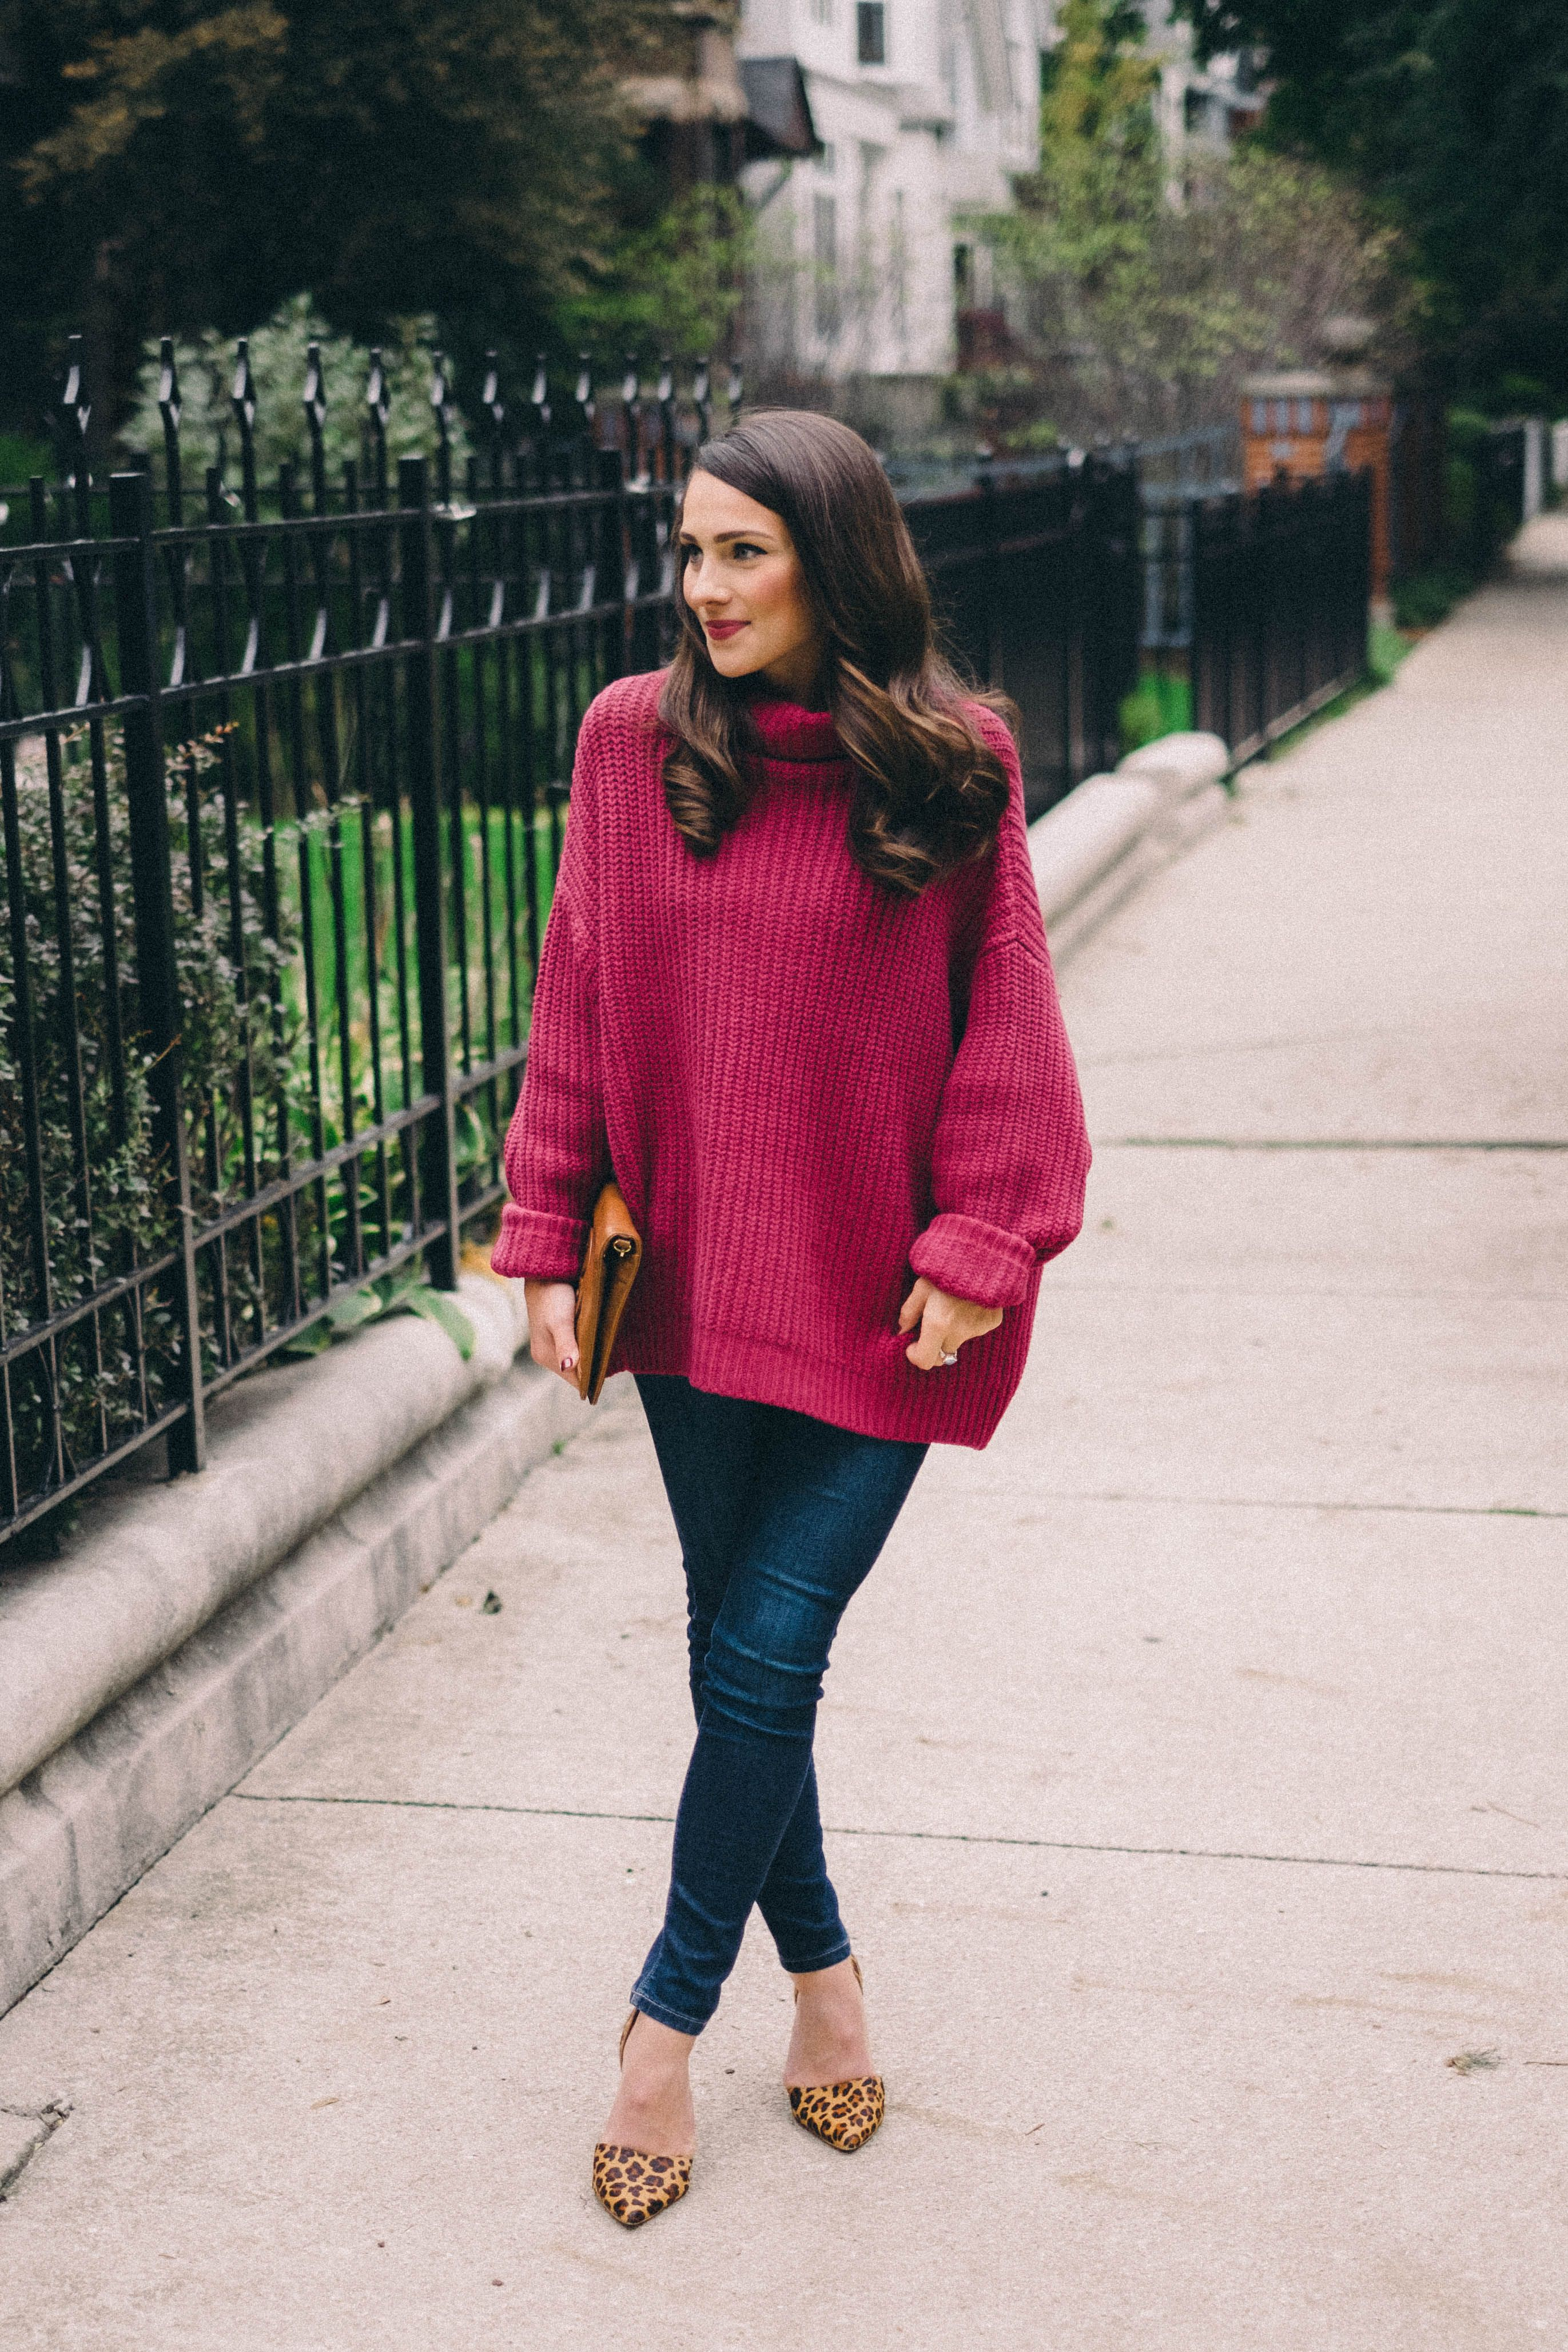 Big Pink Sweater My Style Pink Sweater Sweaters Free People